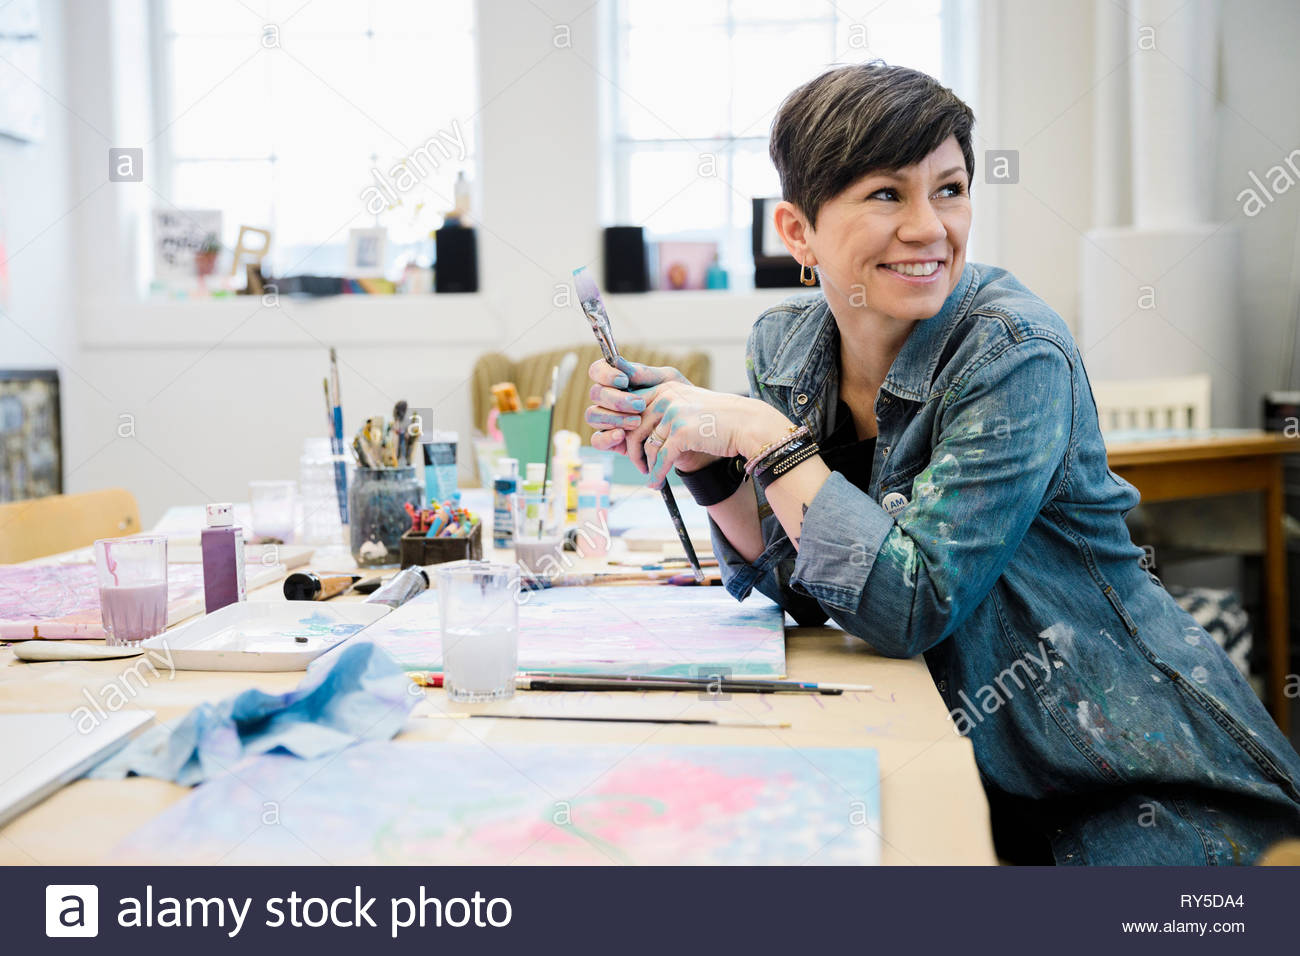 Smiling female artist painting in studio - Stock Image